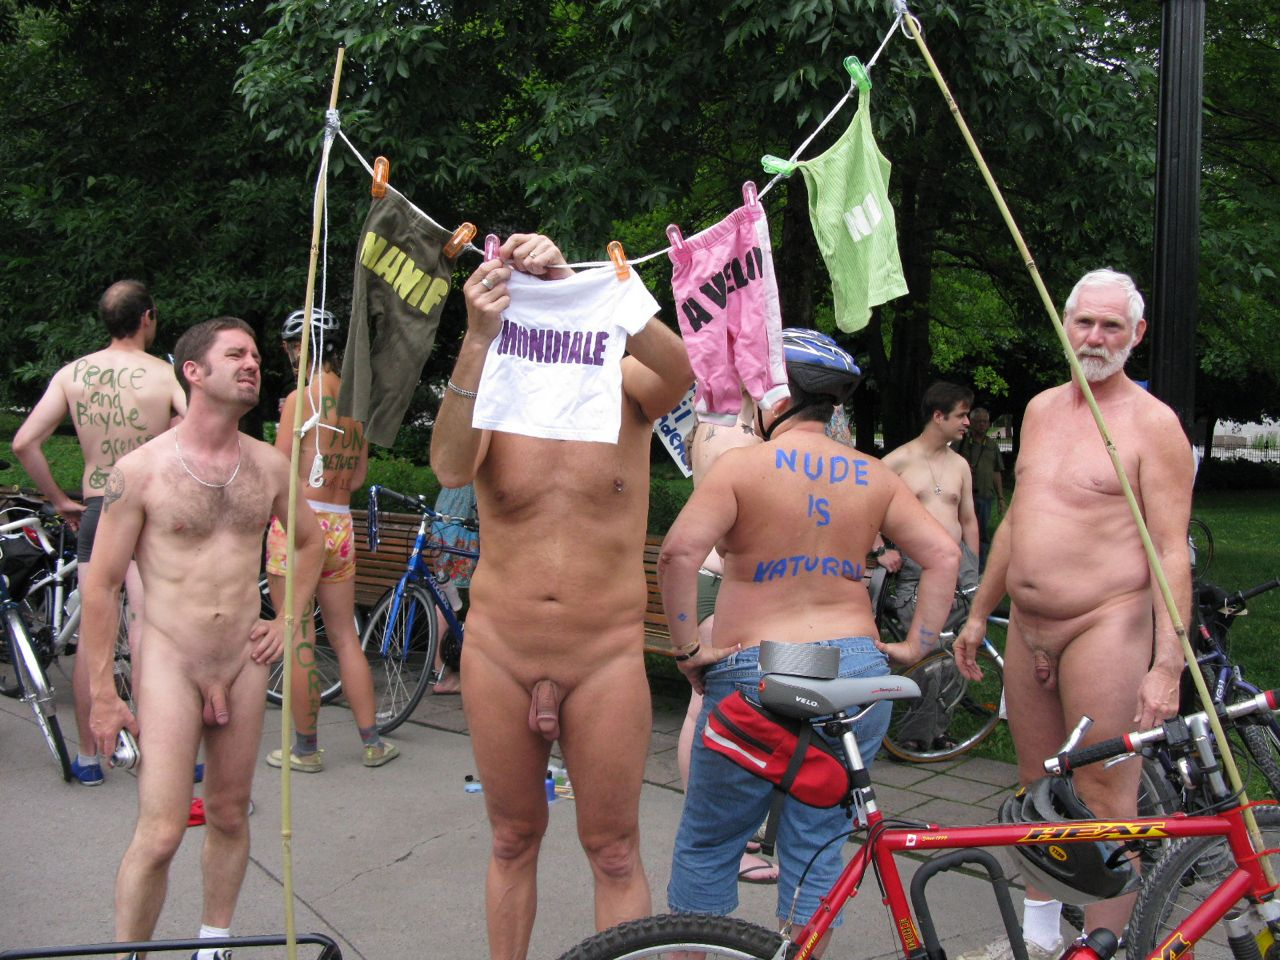 Nude men world naked bike ride join